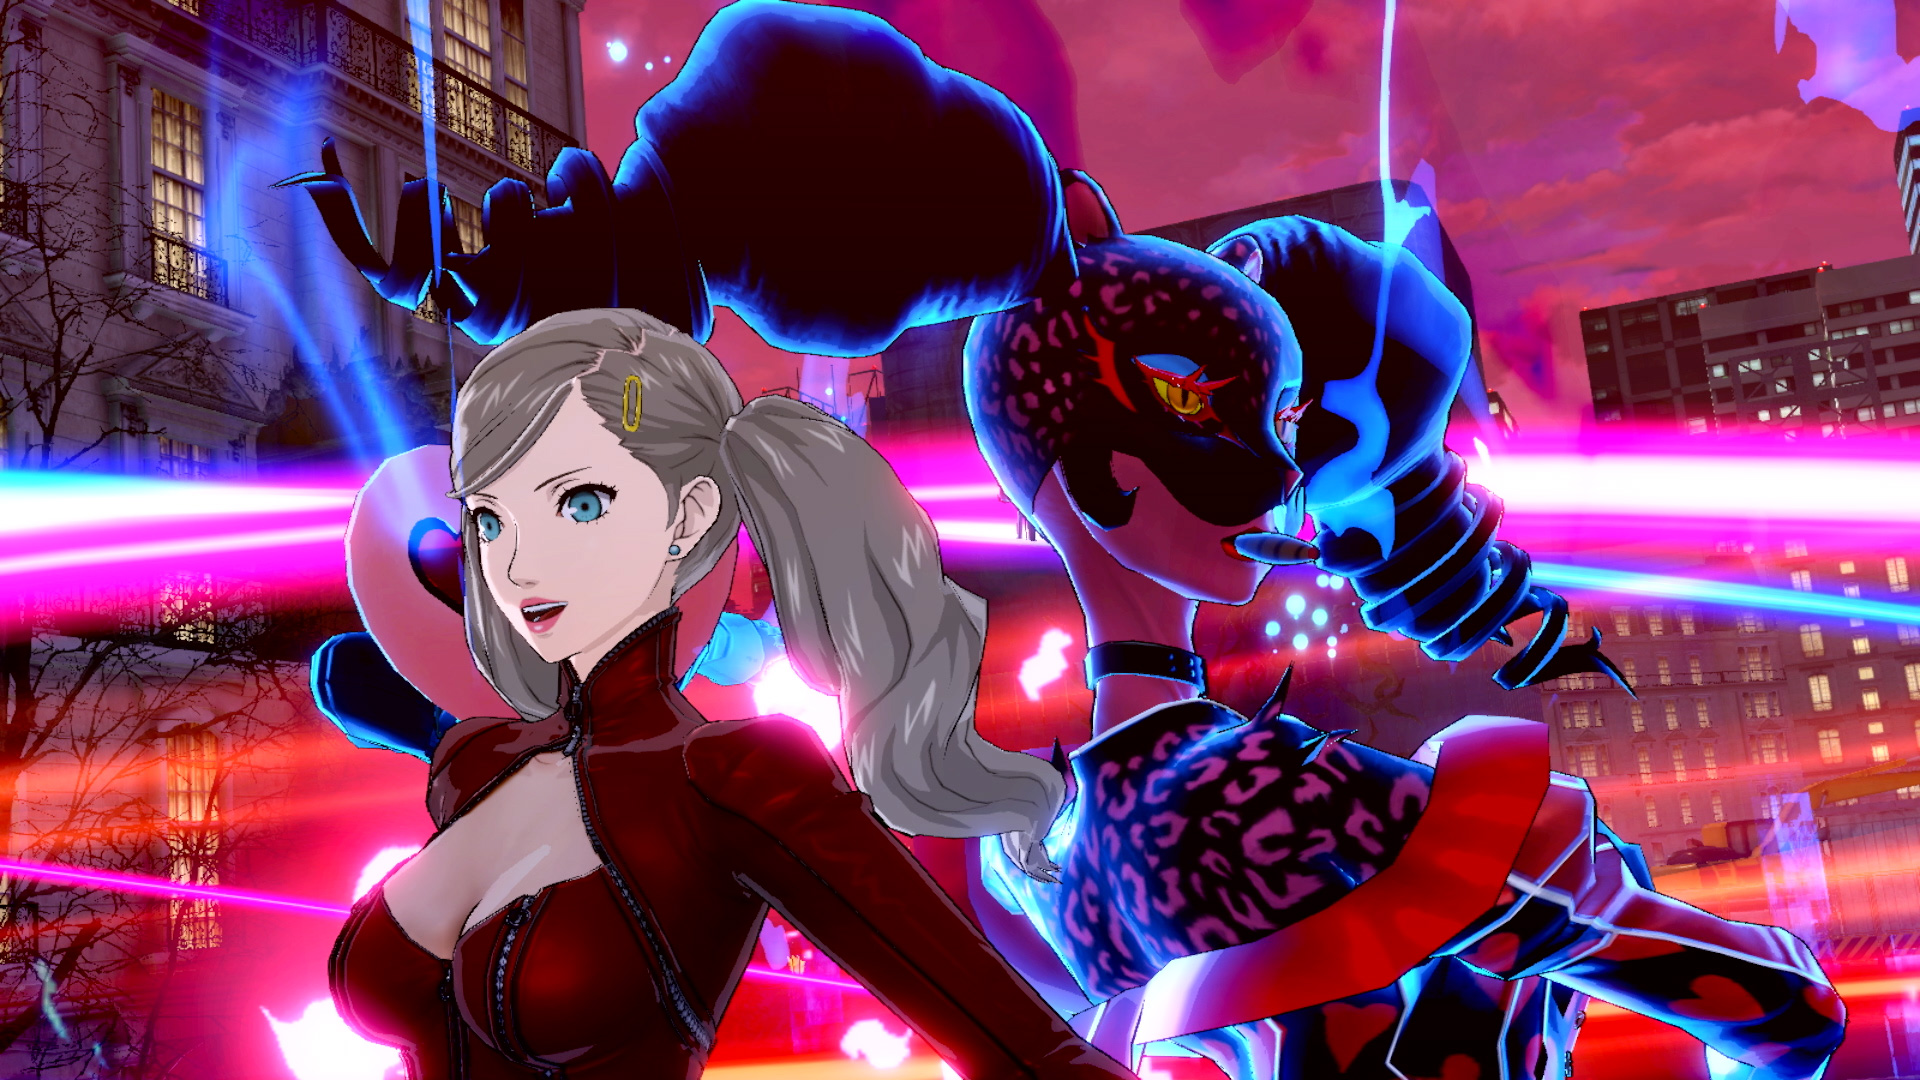 Persona 5 Strikers: Anna shows off with her Persona